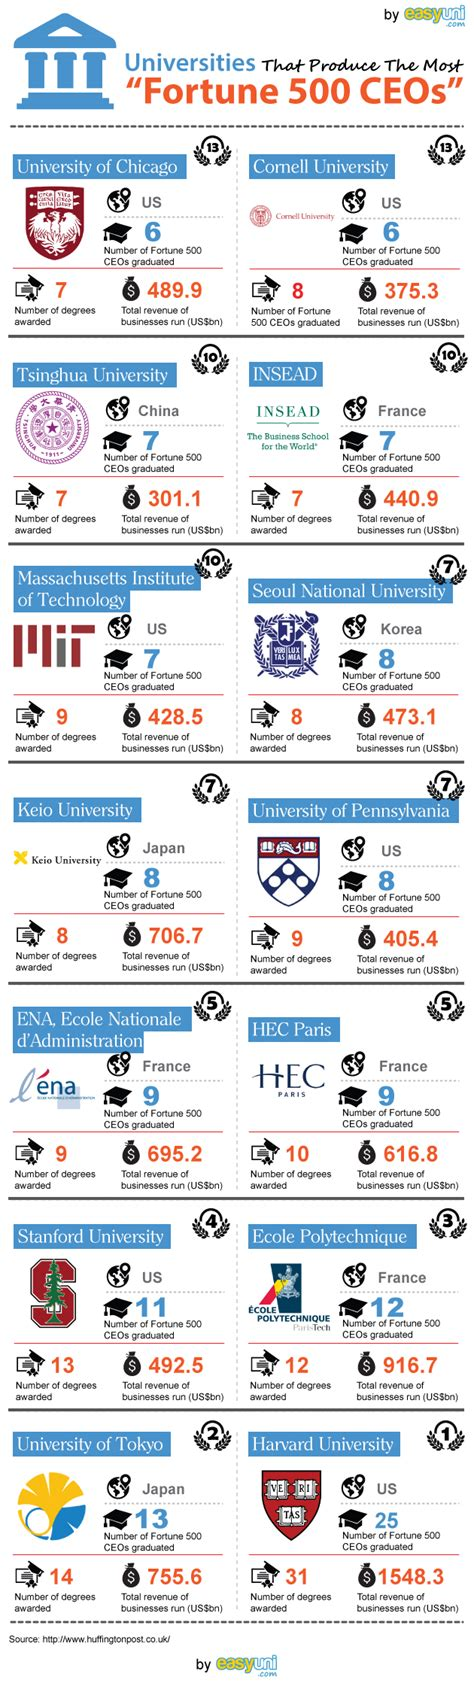 Ranking Mba Programs In Malaysia by Universities That Produce The Most Quot Fortune 500 Ceos Quot